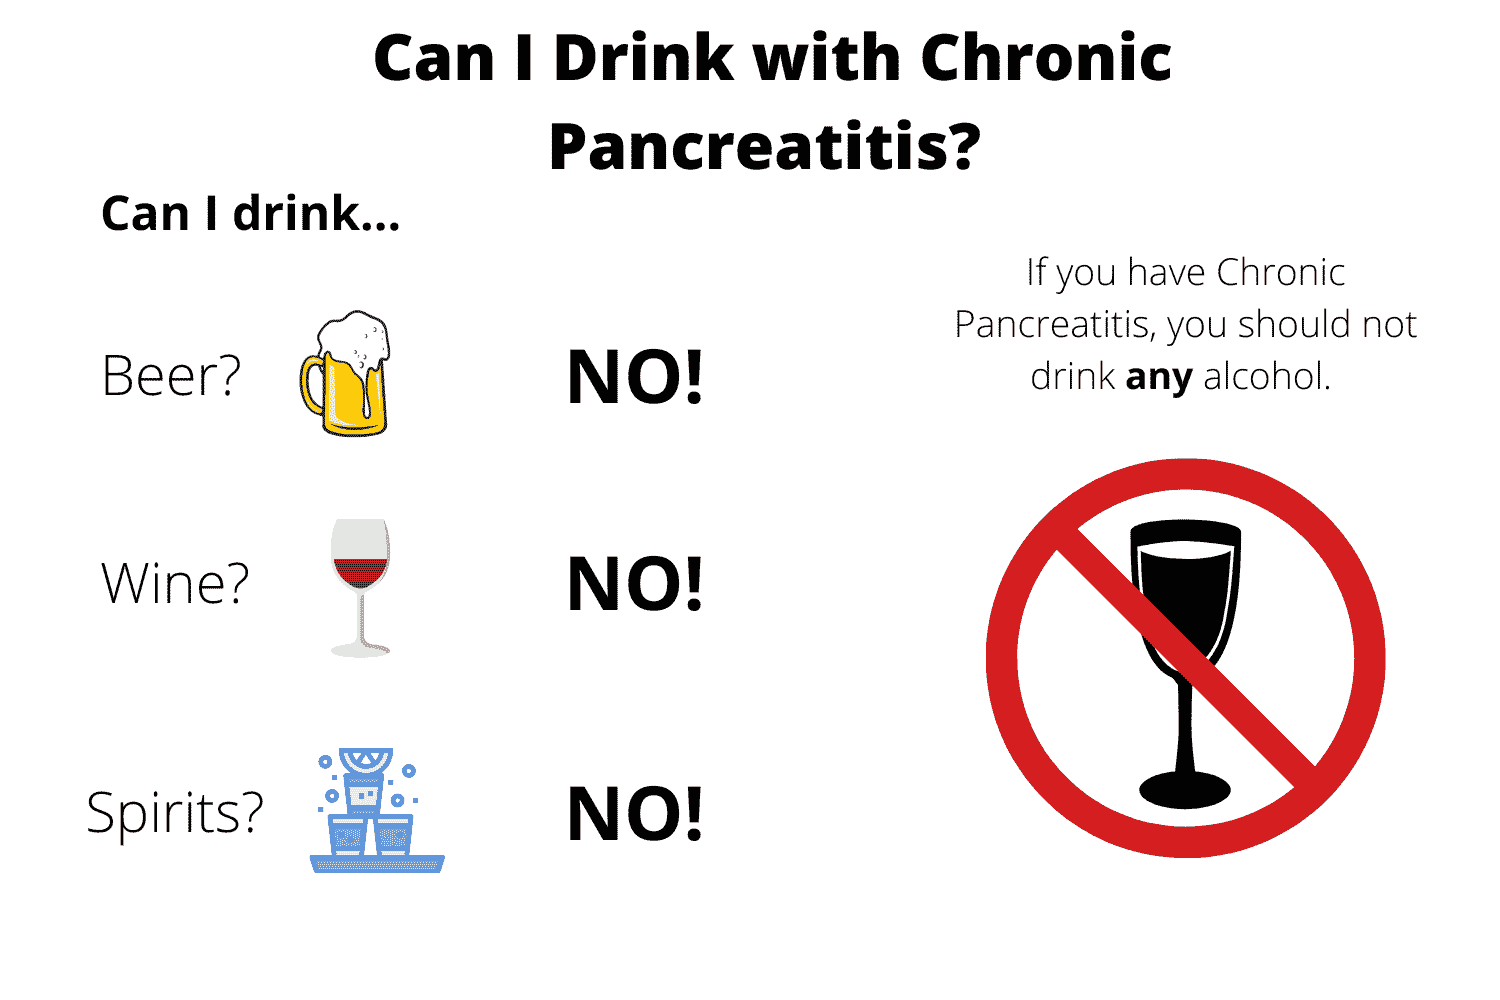 can i drink with chronic pancreatitis? NO! If you have chronic pancreatitis you should not drink any alcohol